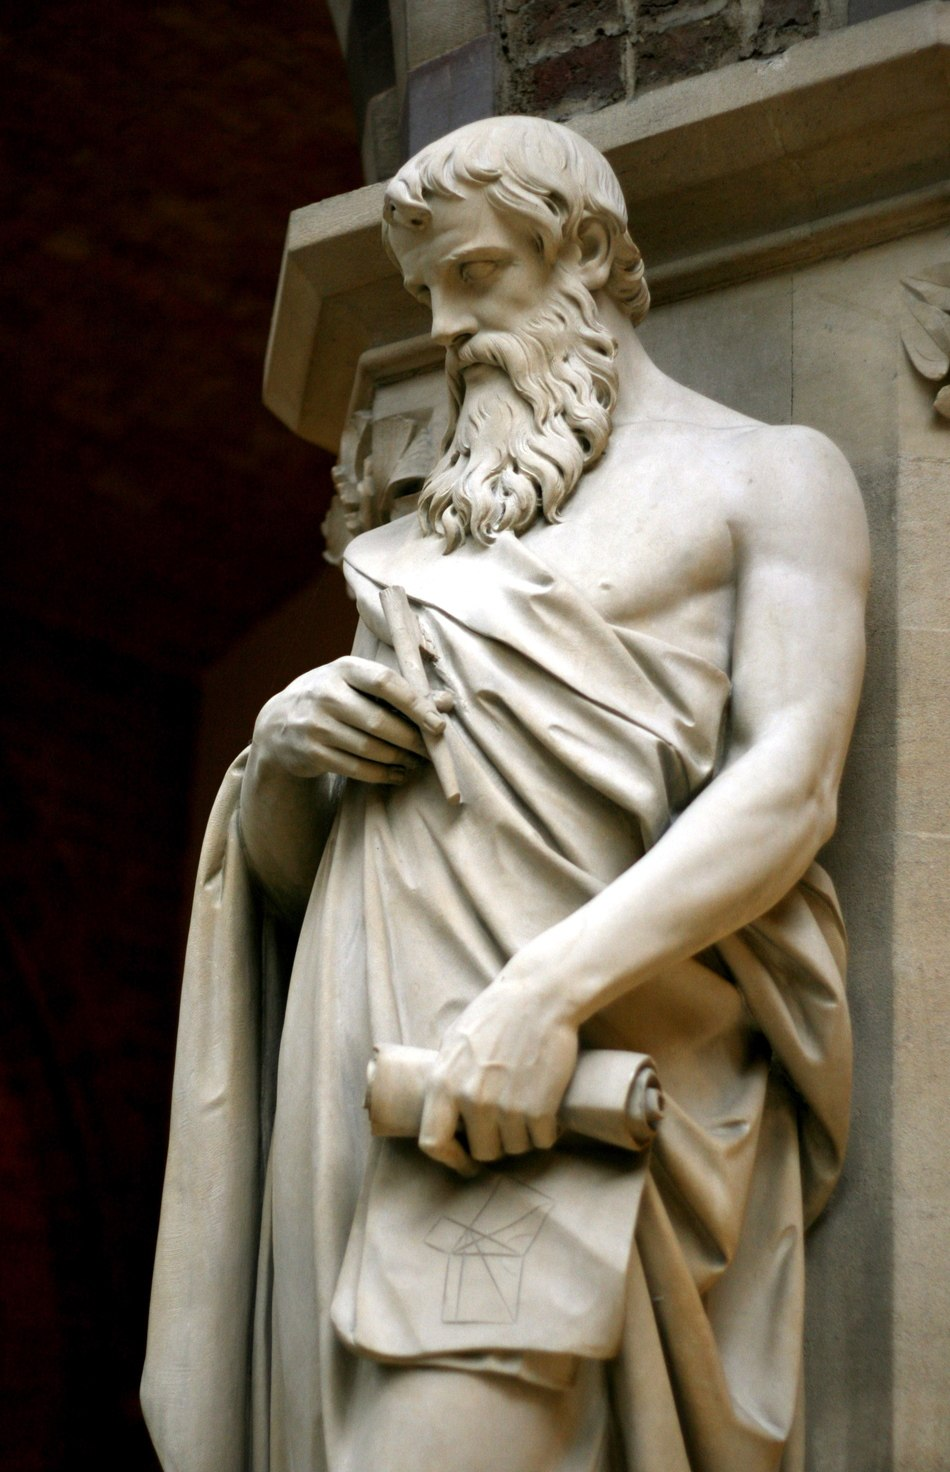 Euclid statue, Oxford University Museum of Natural History, UK - 20080315